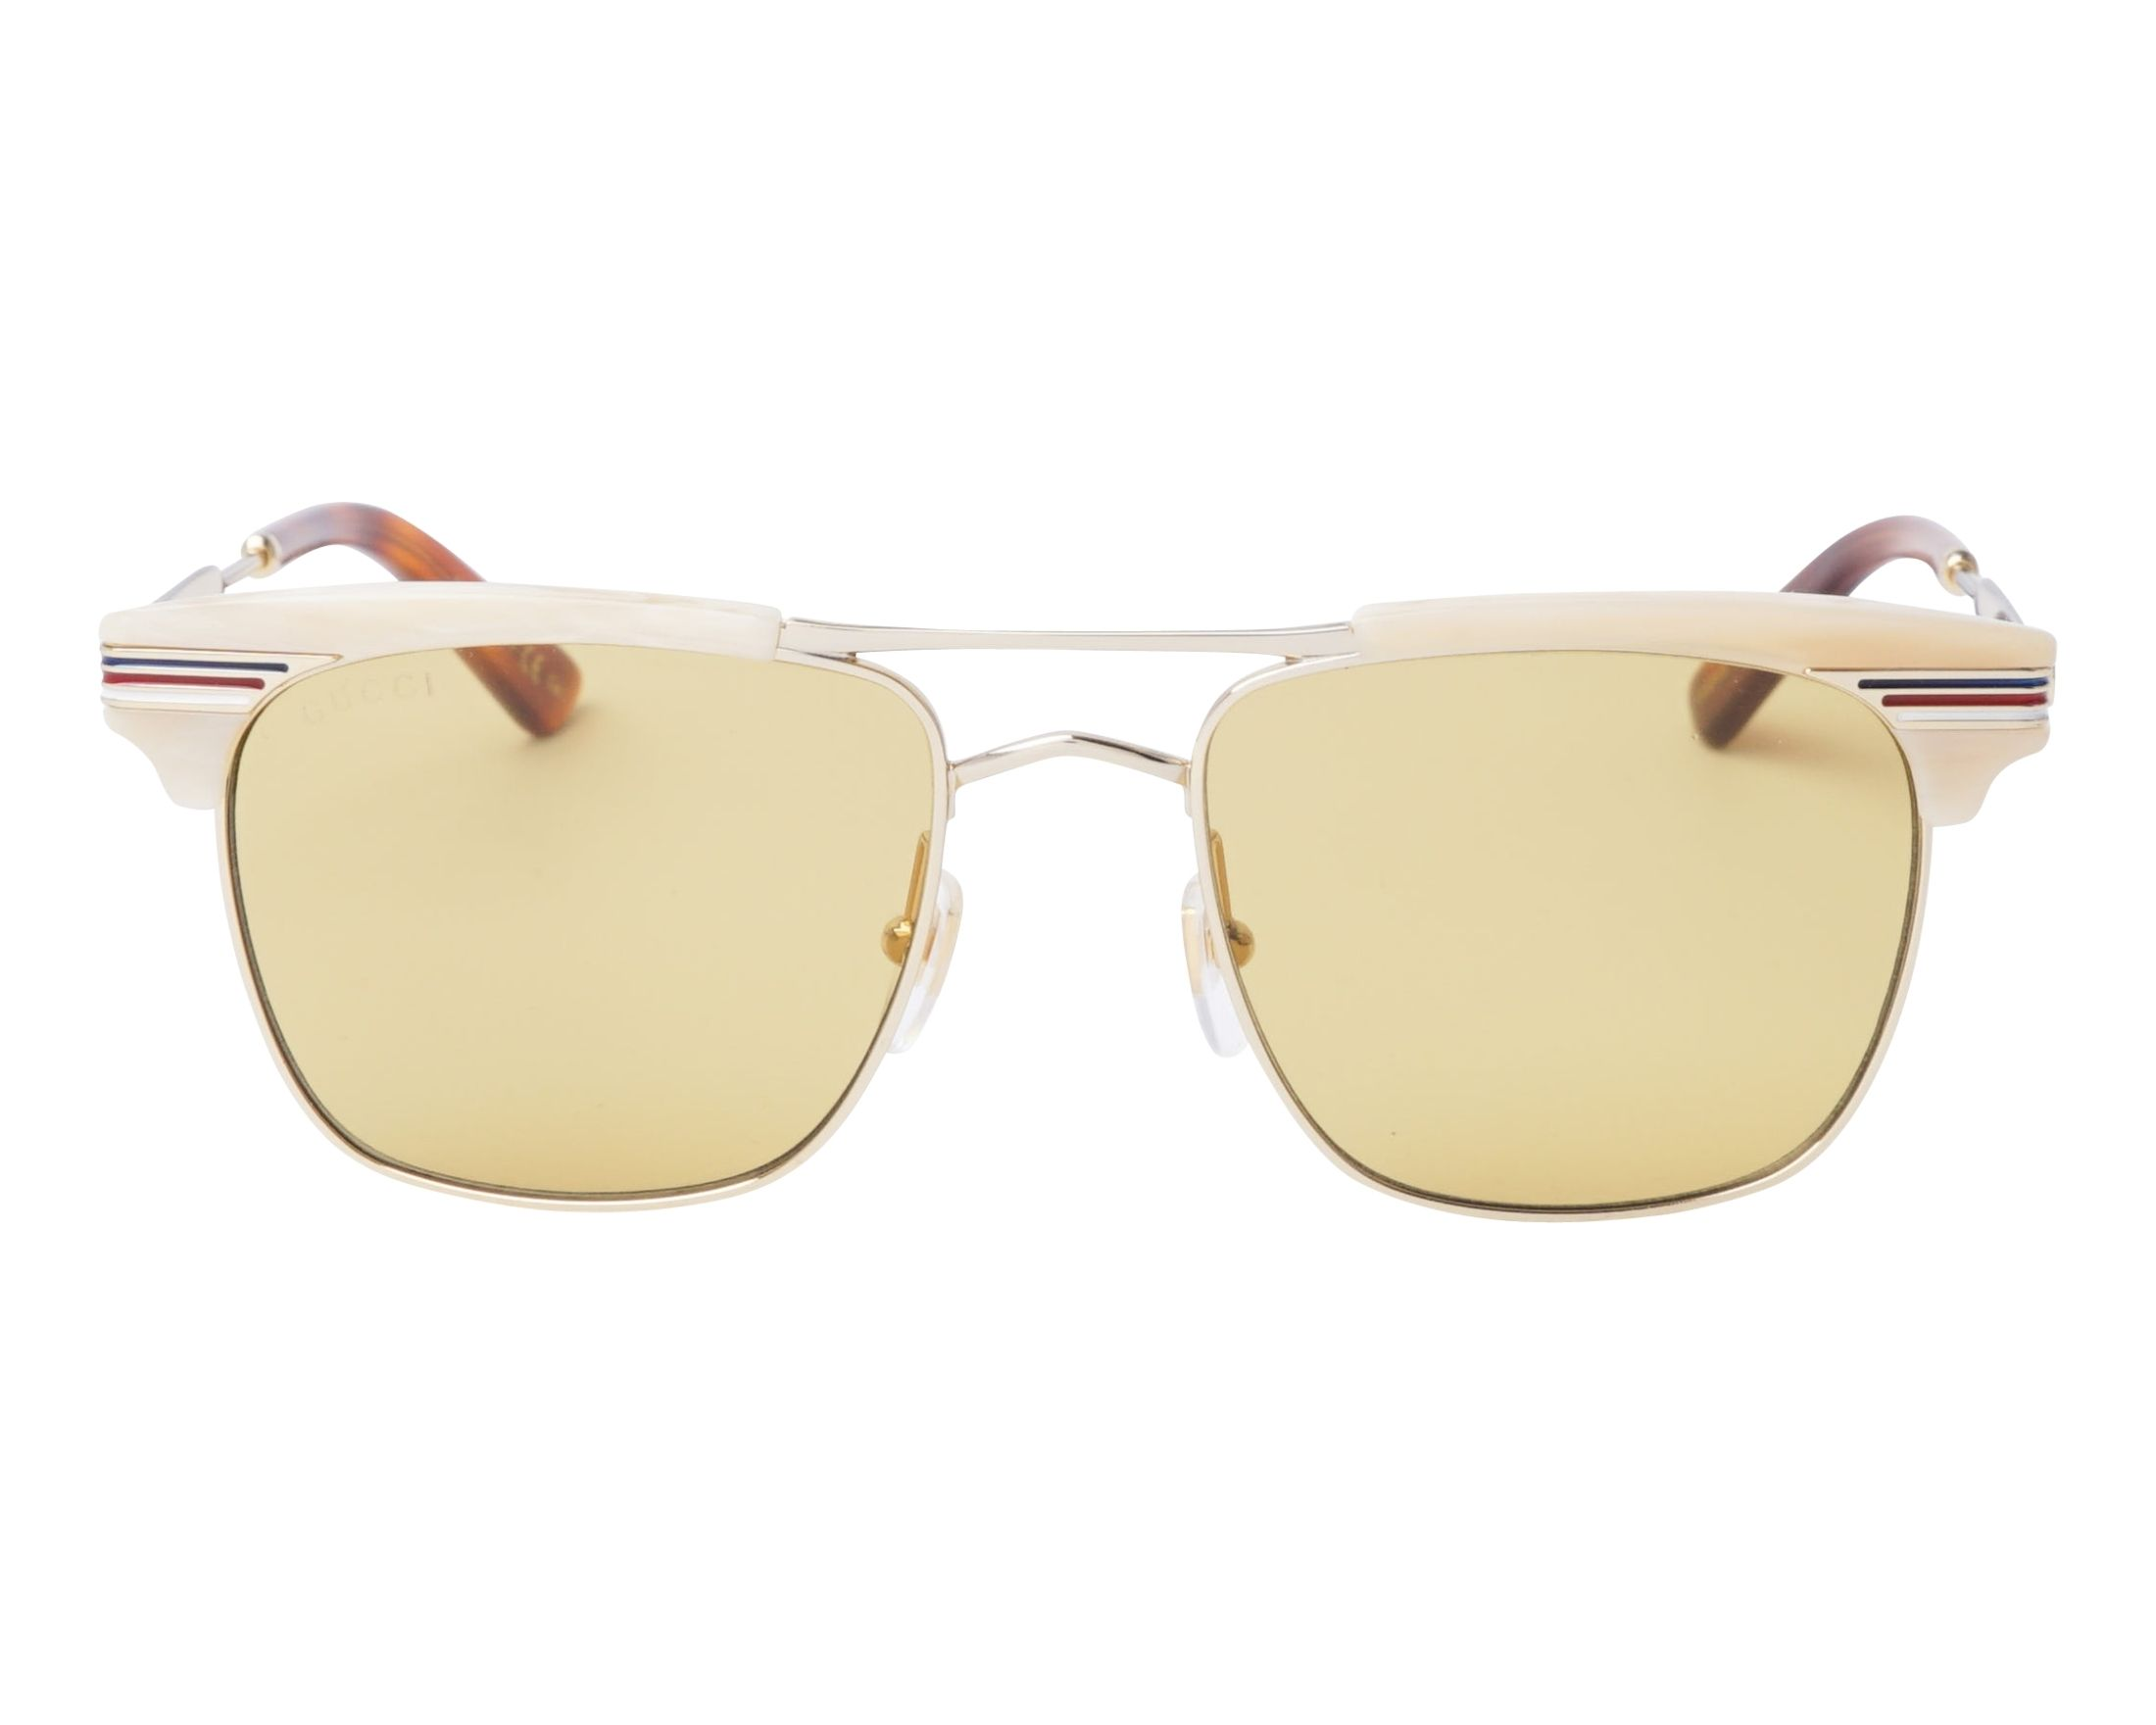 b2ffd26bfb8 Sunglasses Gucci GG-0287-S 005 52-18 Gold Beige front view